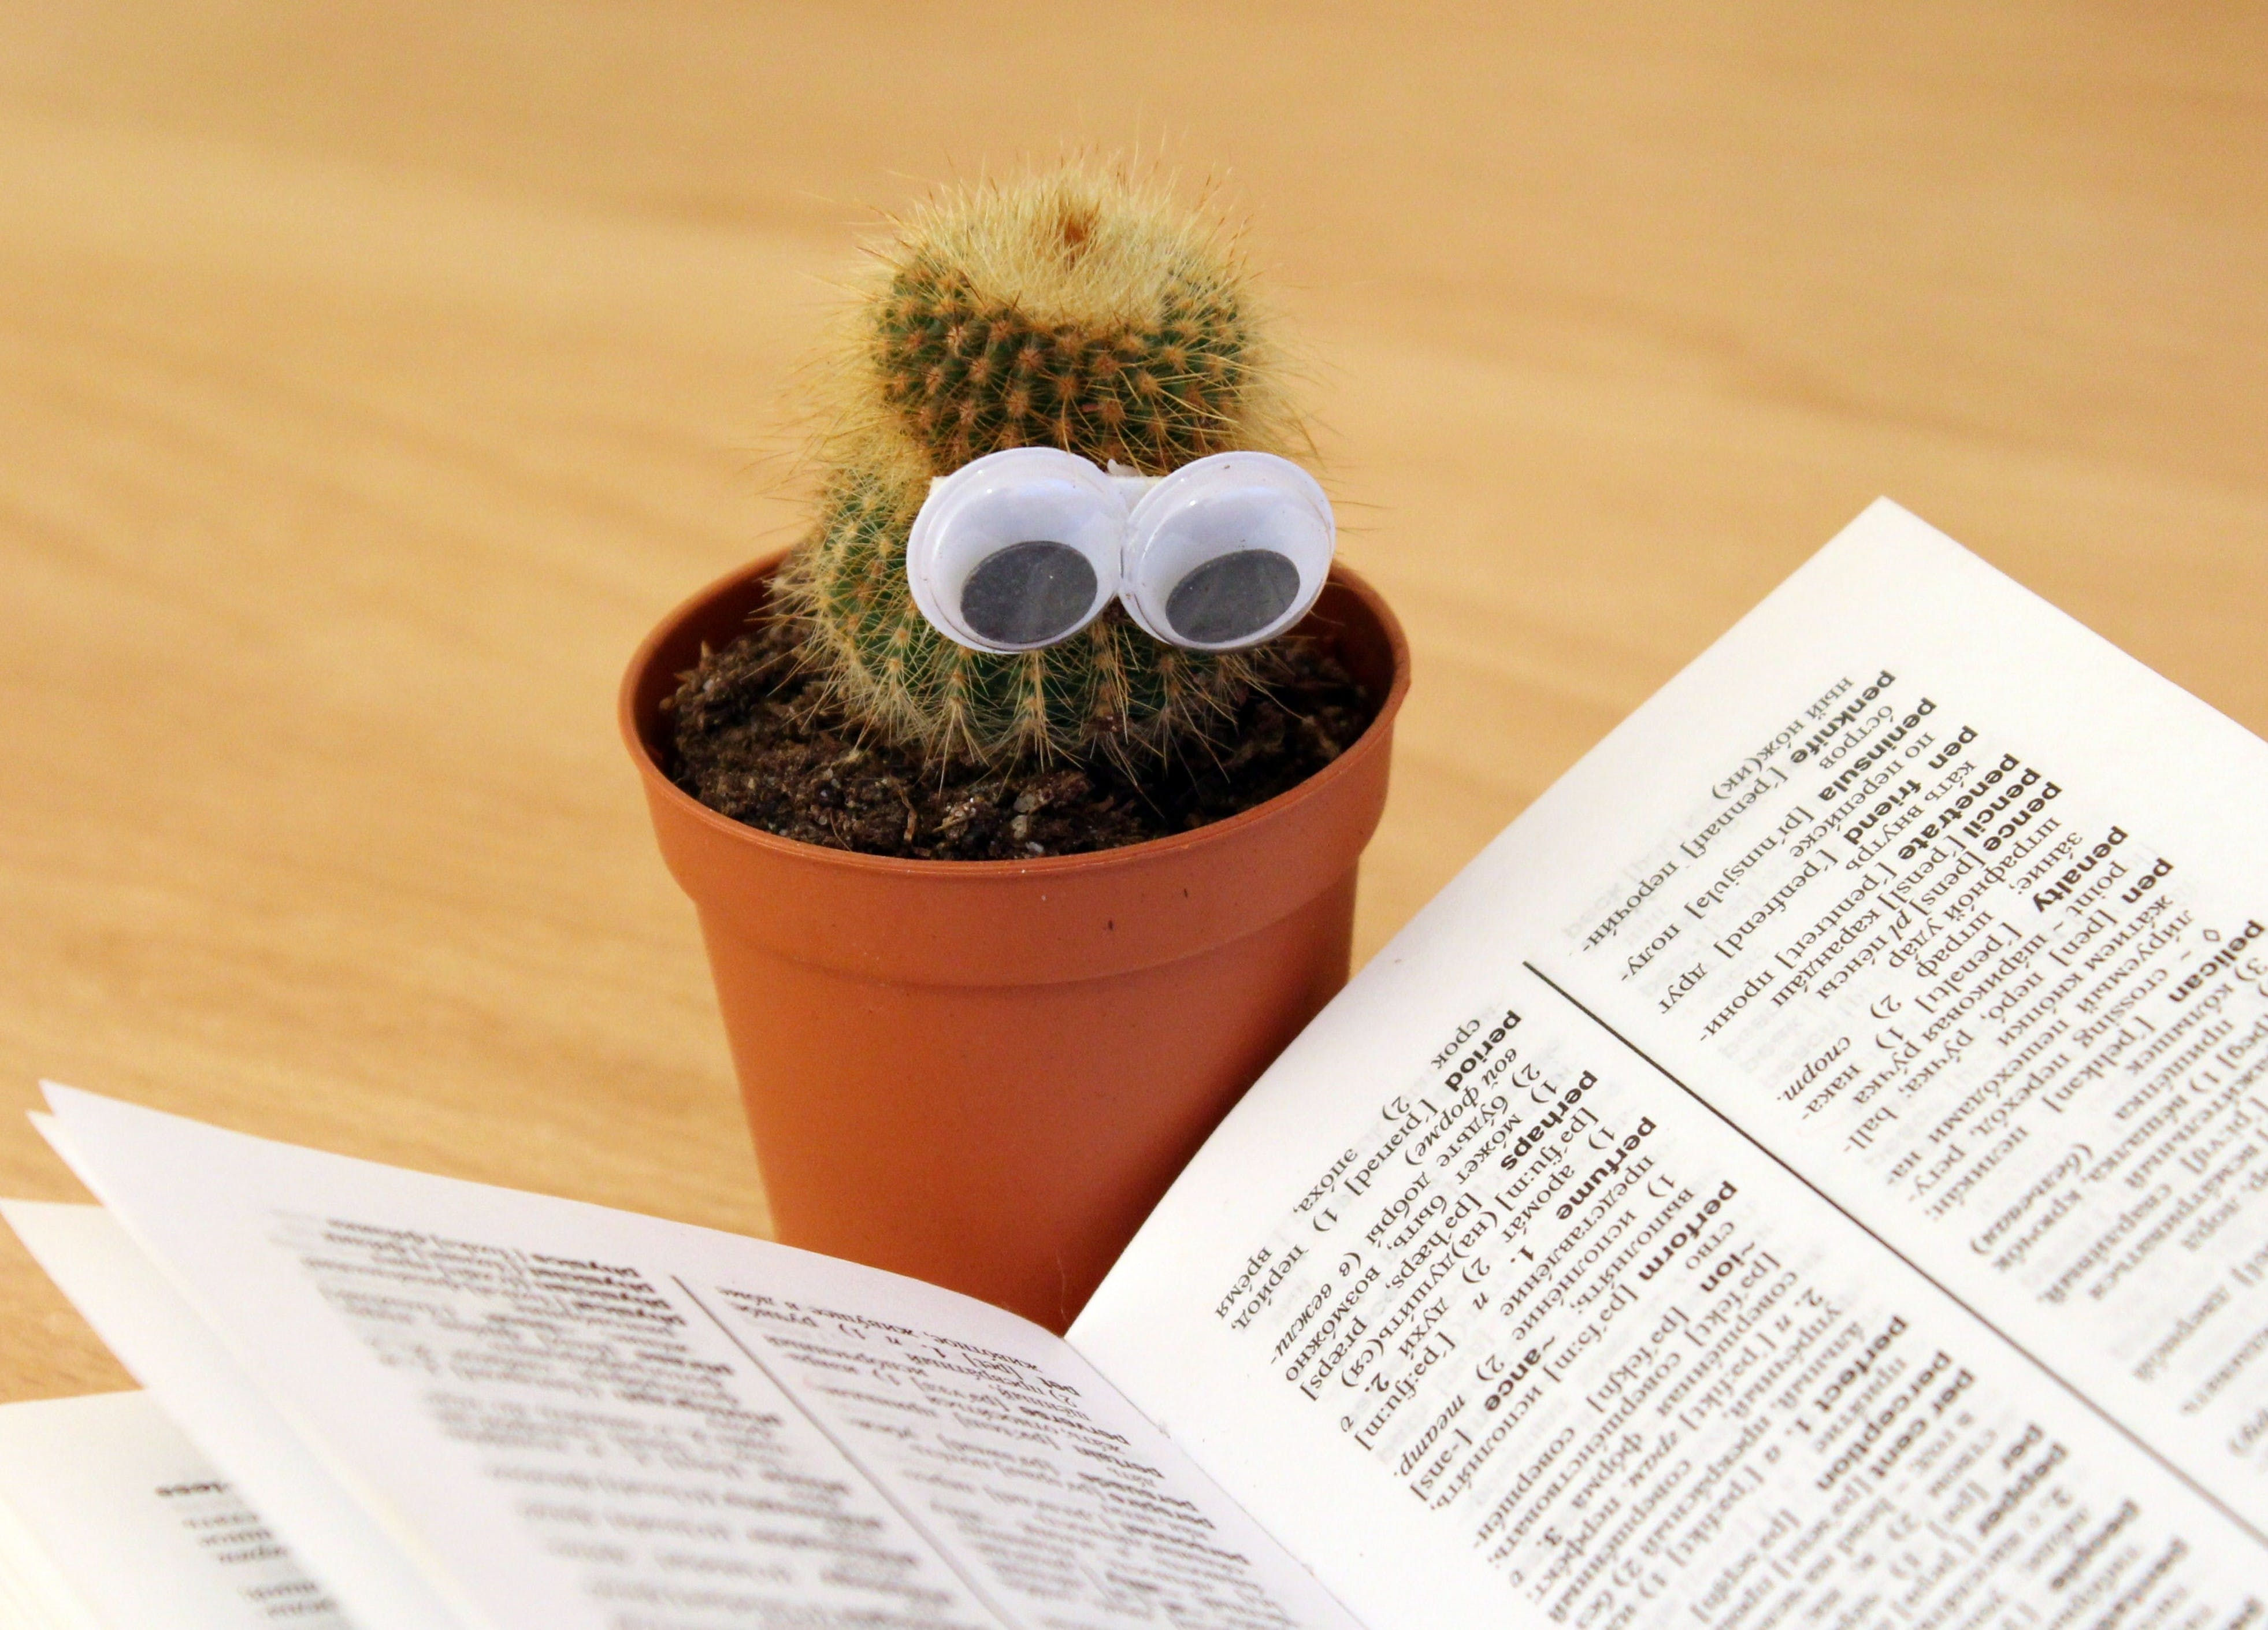 Green Cactus Beside White Book